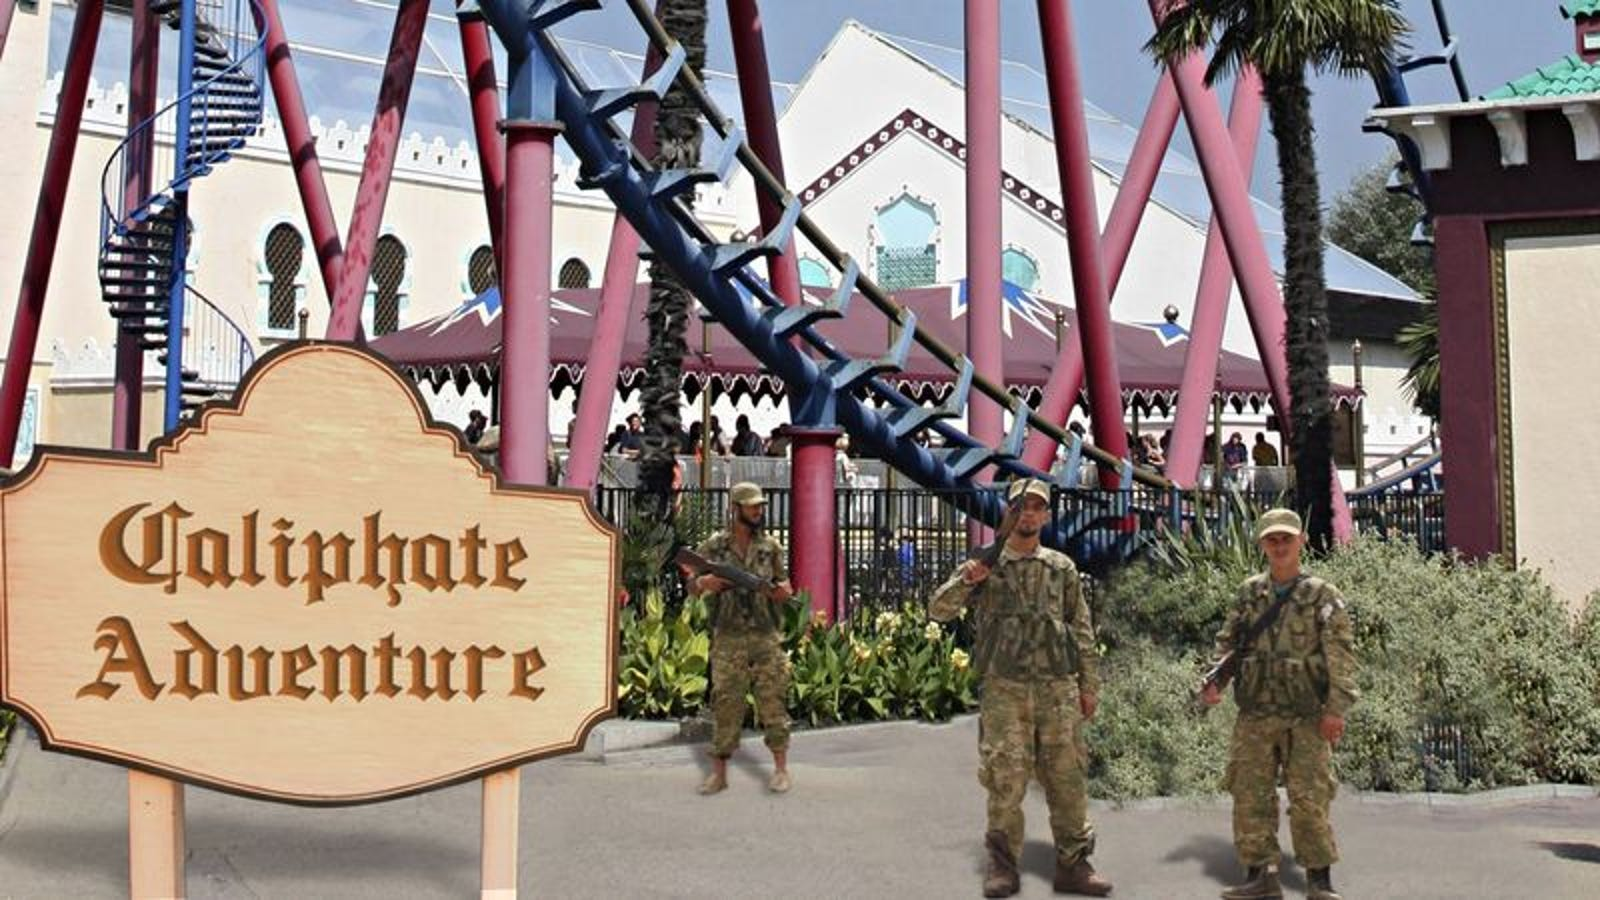 Turkish Forces Have Just Seized Control Of ISIS' Caliphate Adventure Theme Park